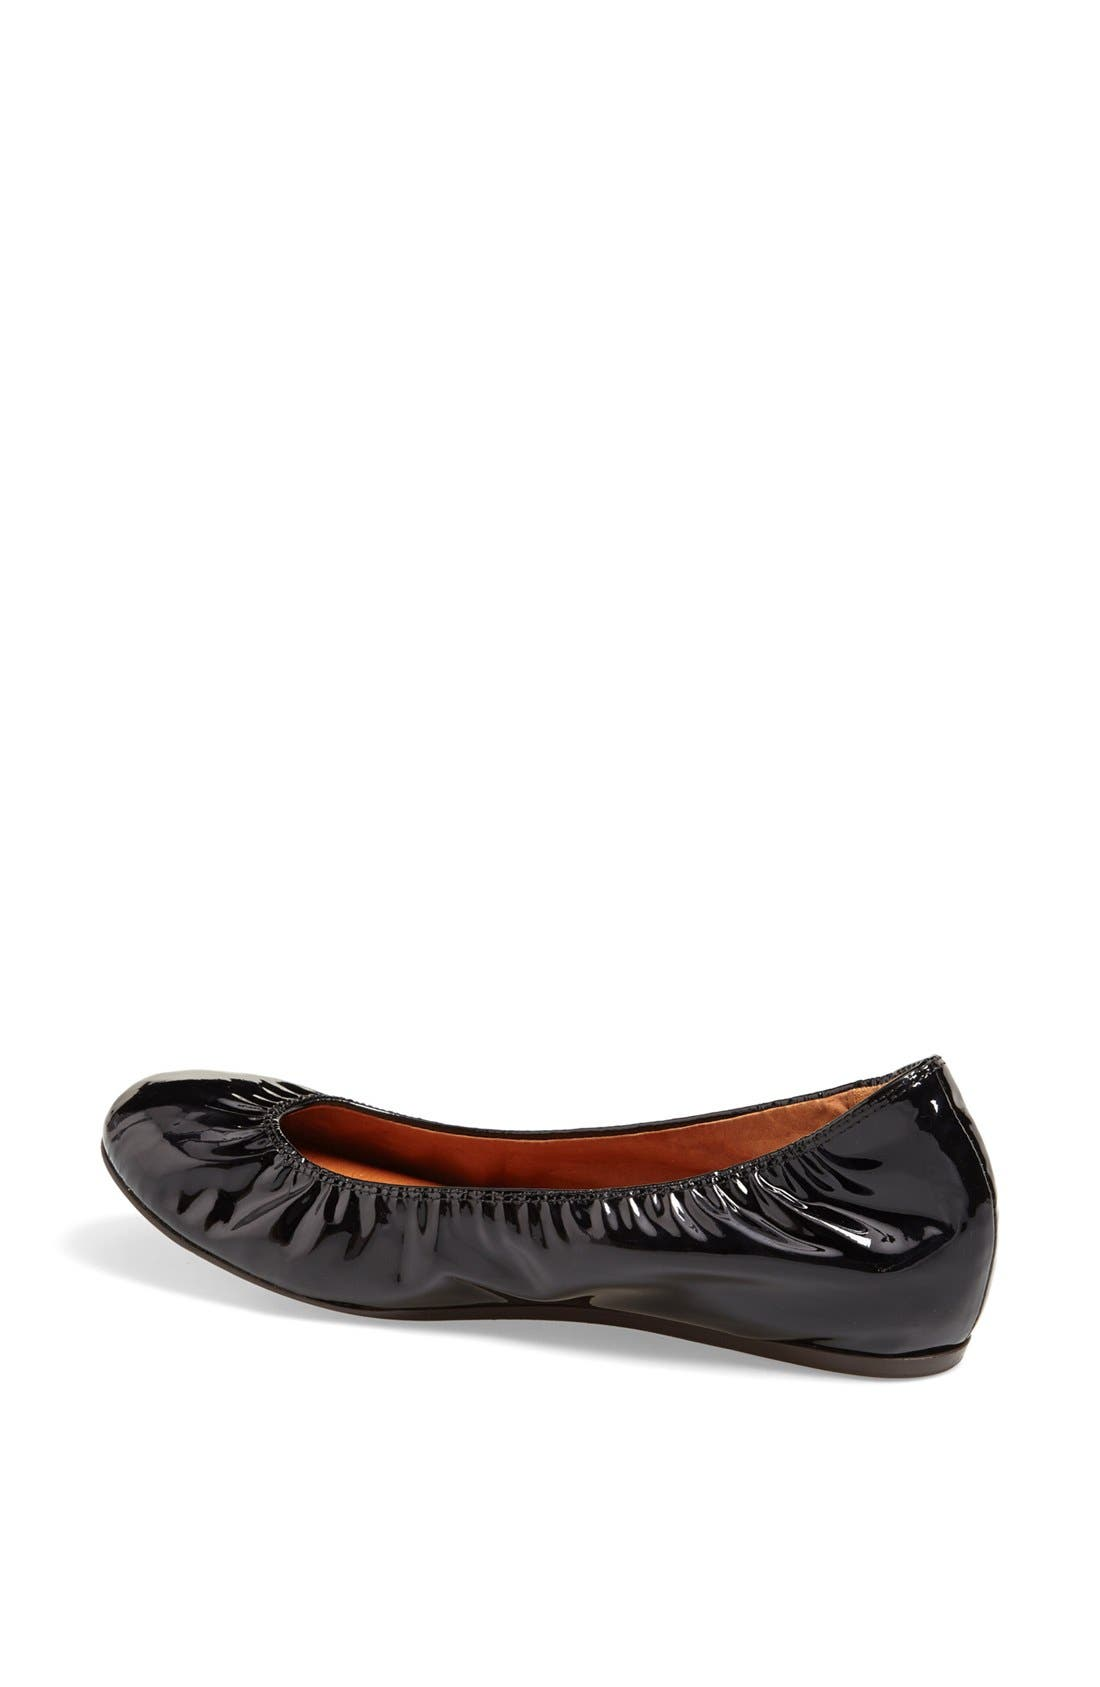 Alternate Image 2  - Lanvin Patent Leather Ballerina Flat